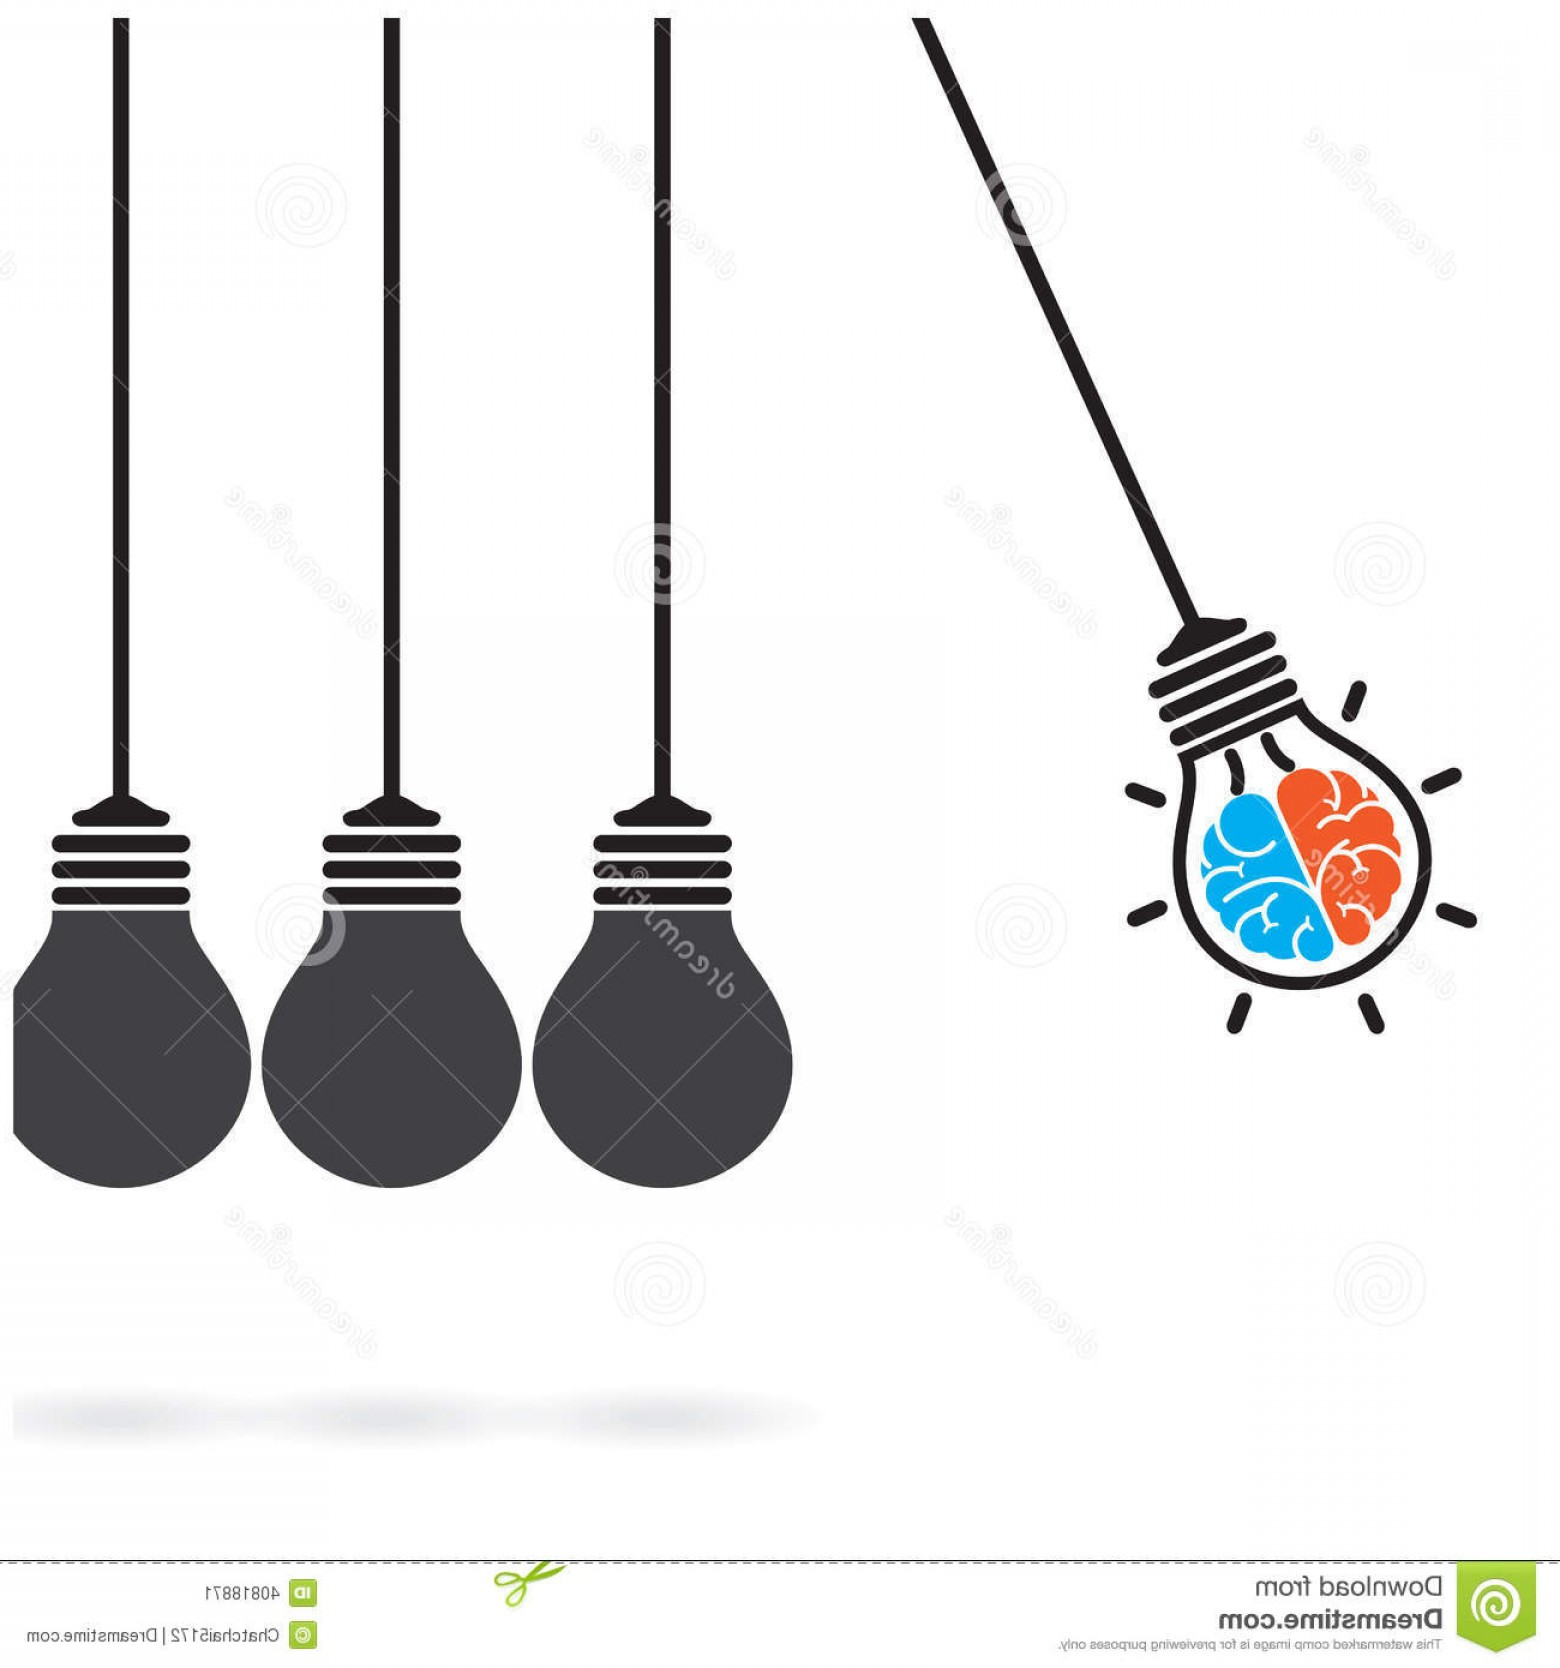 Creative Light Bulb Vector: Stock Image Newton S Cradle Concept Background Creative Light Bulb Idea C Business Abstract Vector Illustration Image